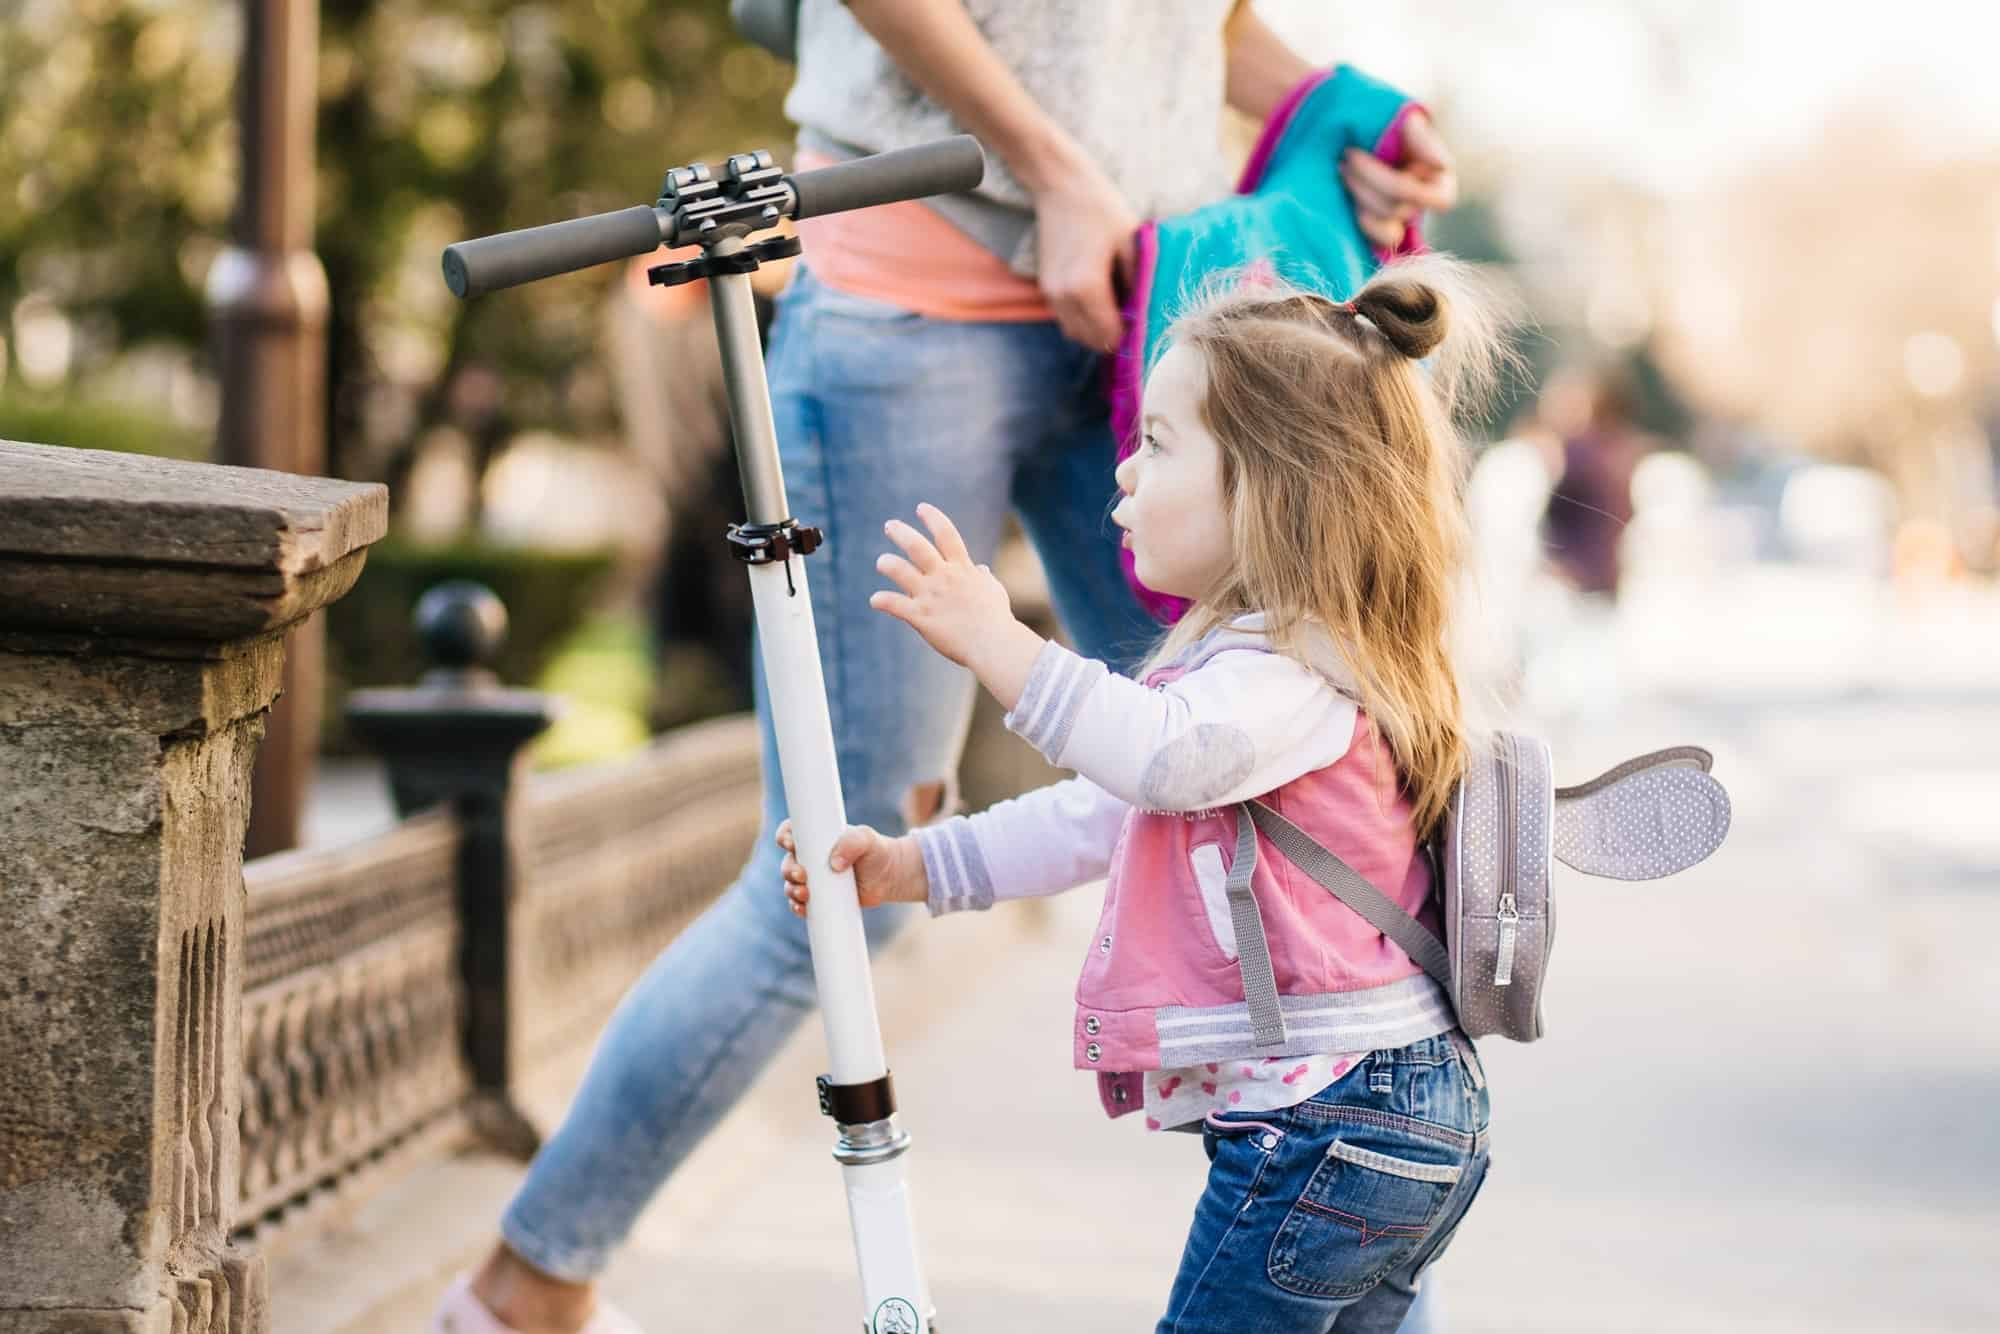 Little girl and scooter